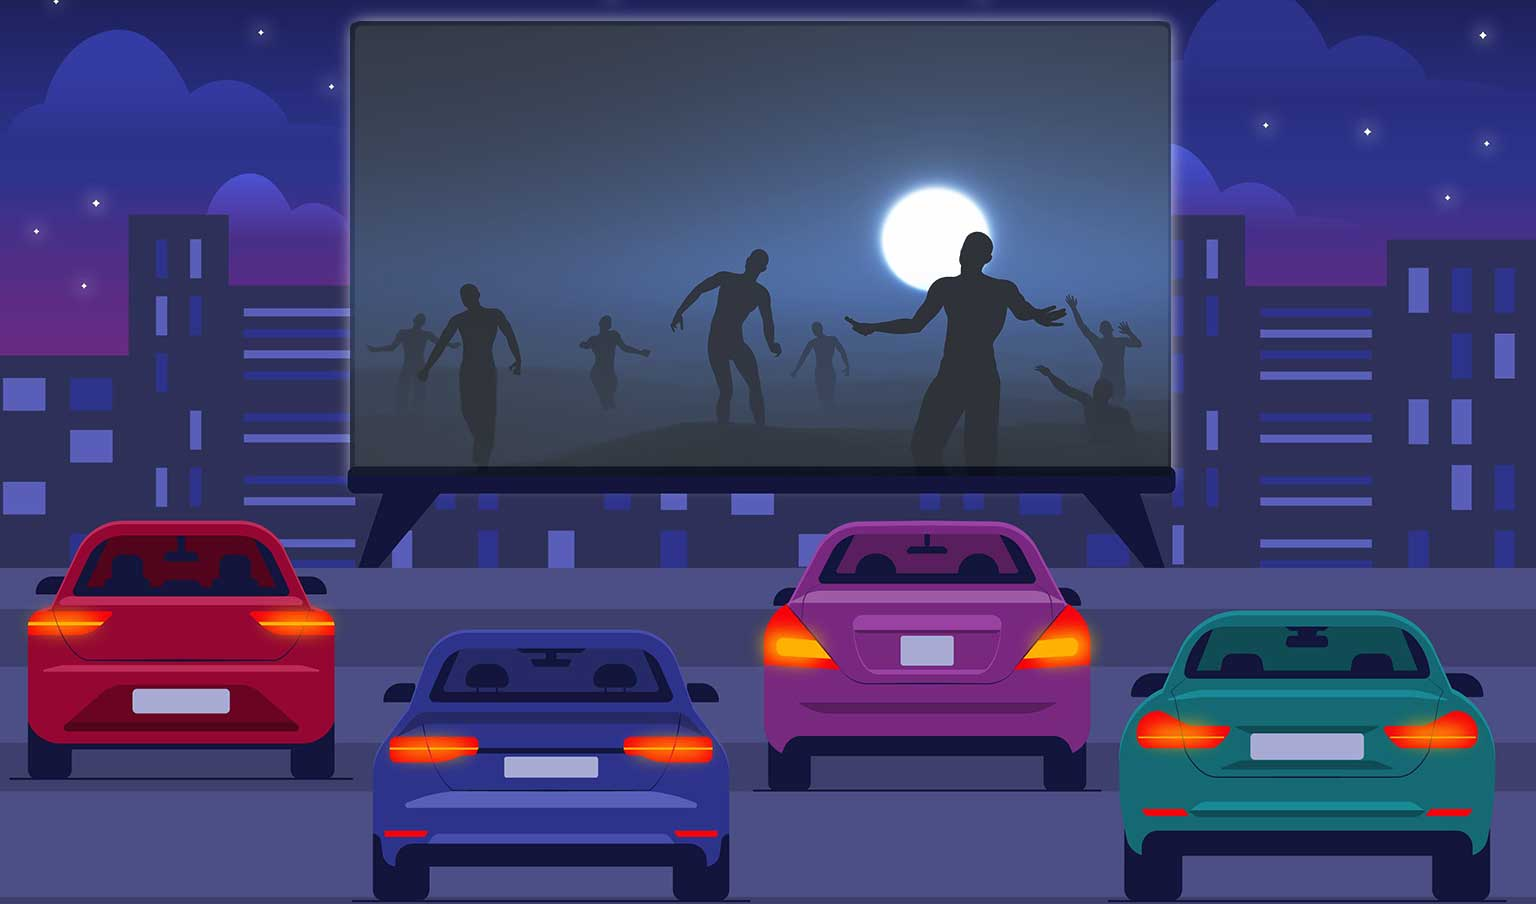 Cinema of Horrors in Vancouver WA represented by Illustrated drive-in movie theater with zombies on the screen